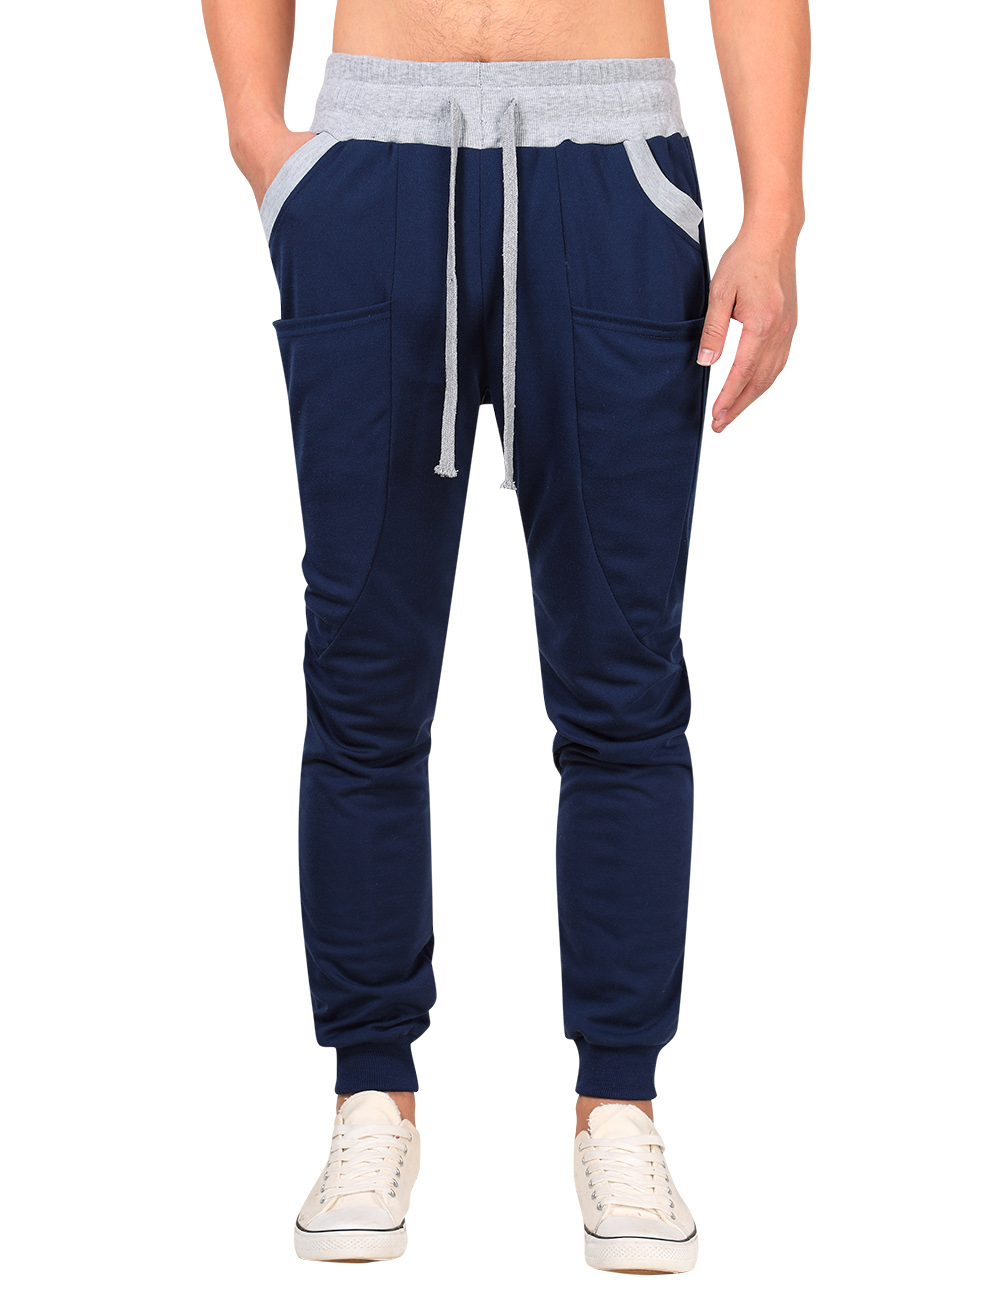 Yong Horse Men's Sweatpants - Royal blue S